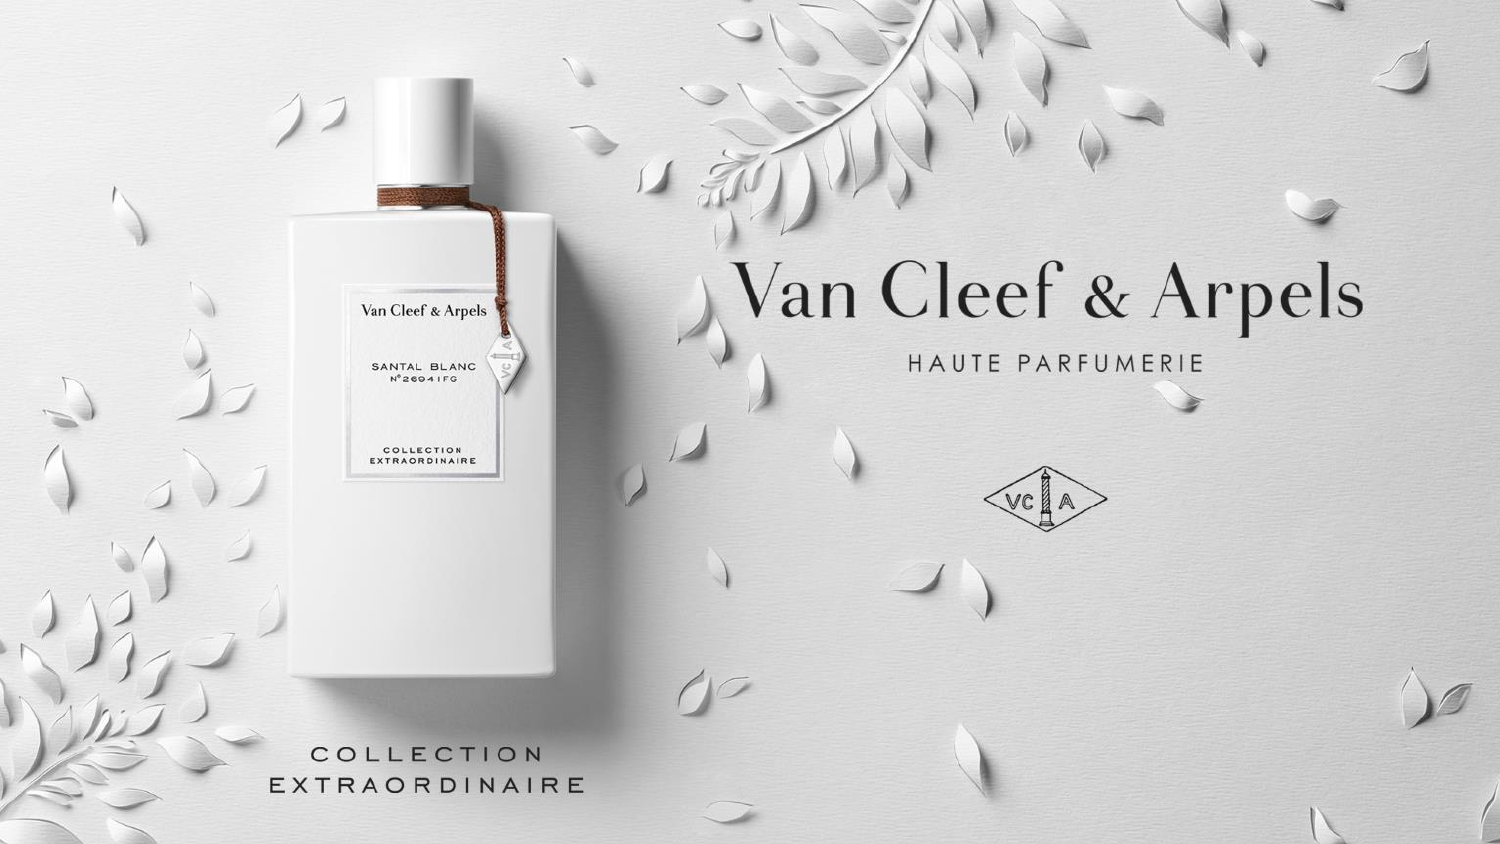 Van Cleef and Arpels profumo Santal Blanc